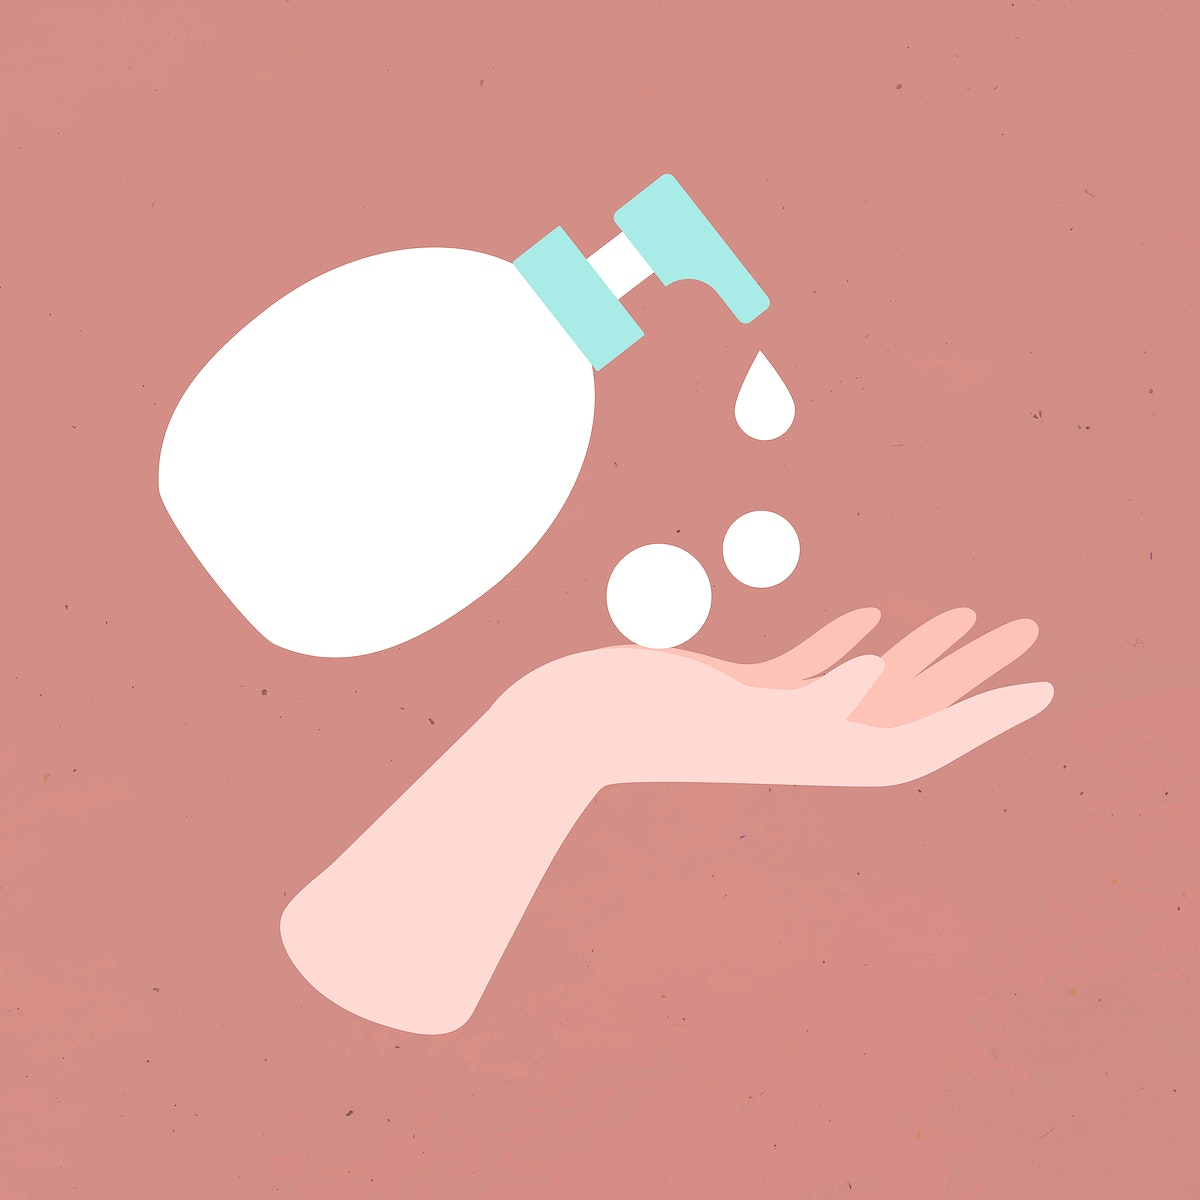 Wash hands with soap and water vectork